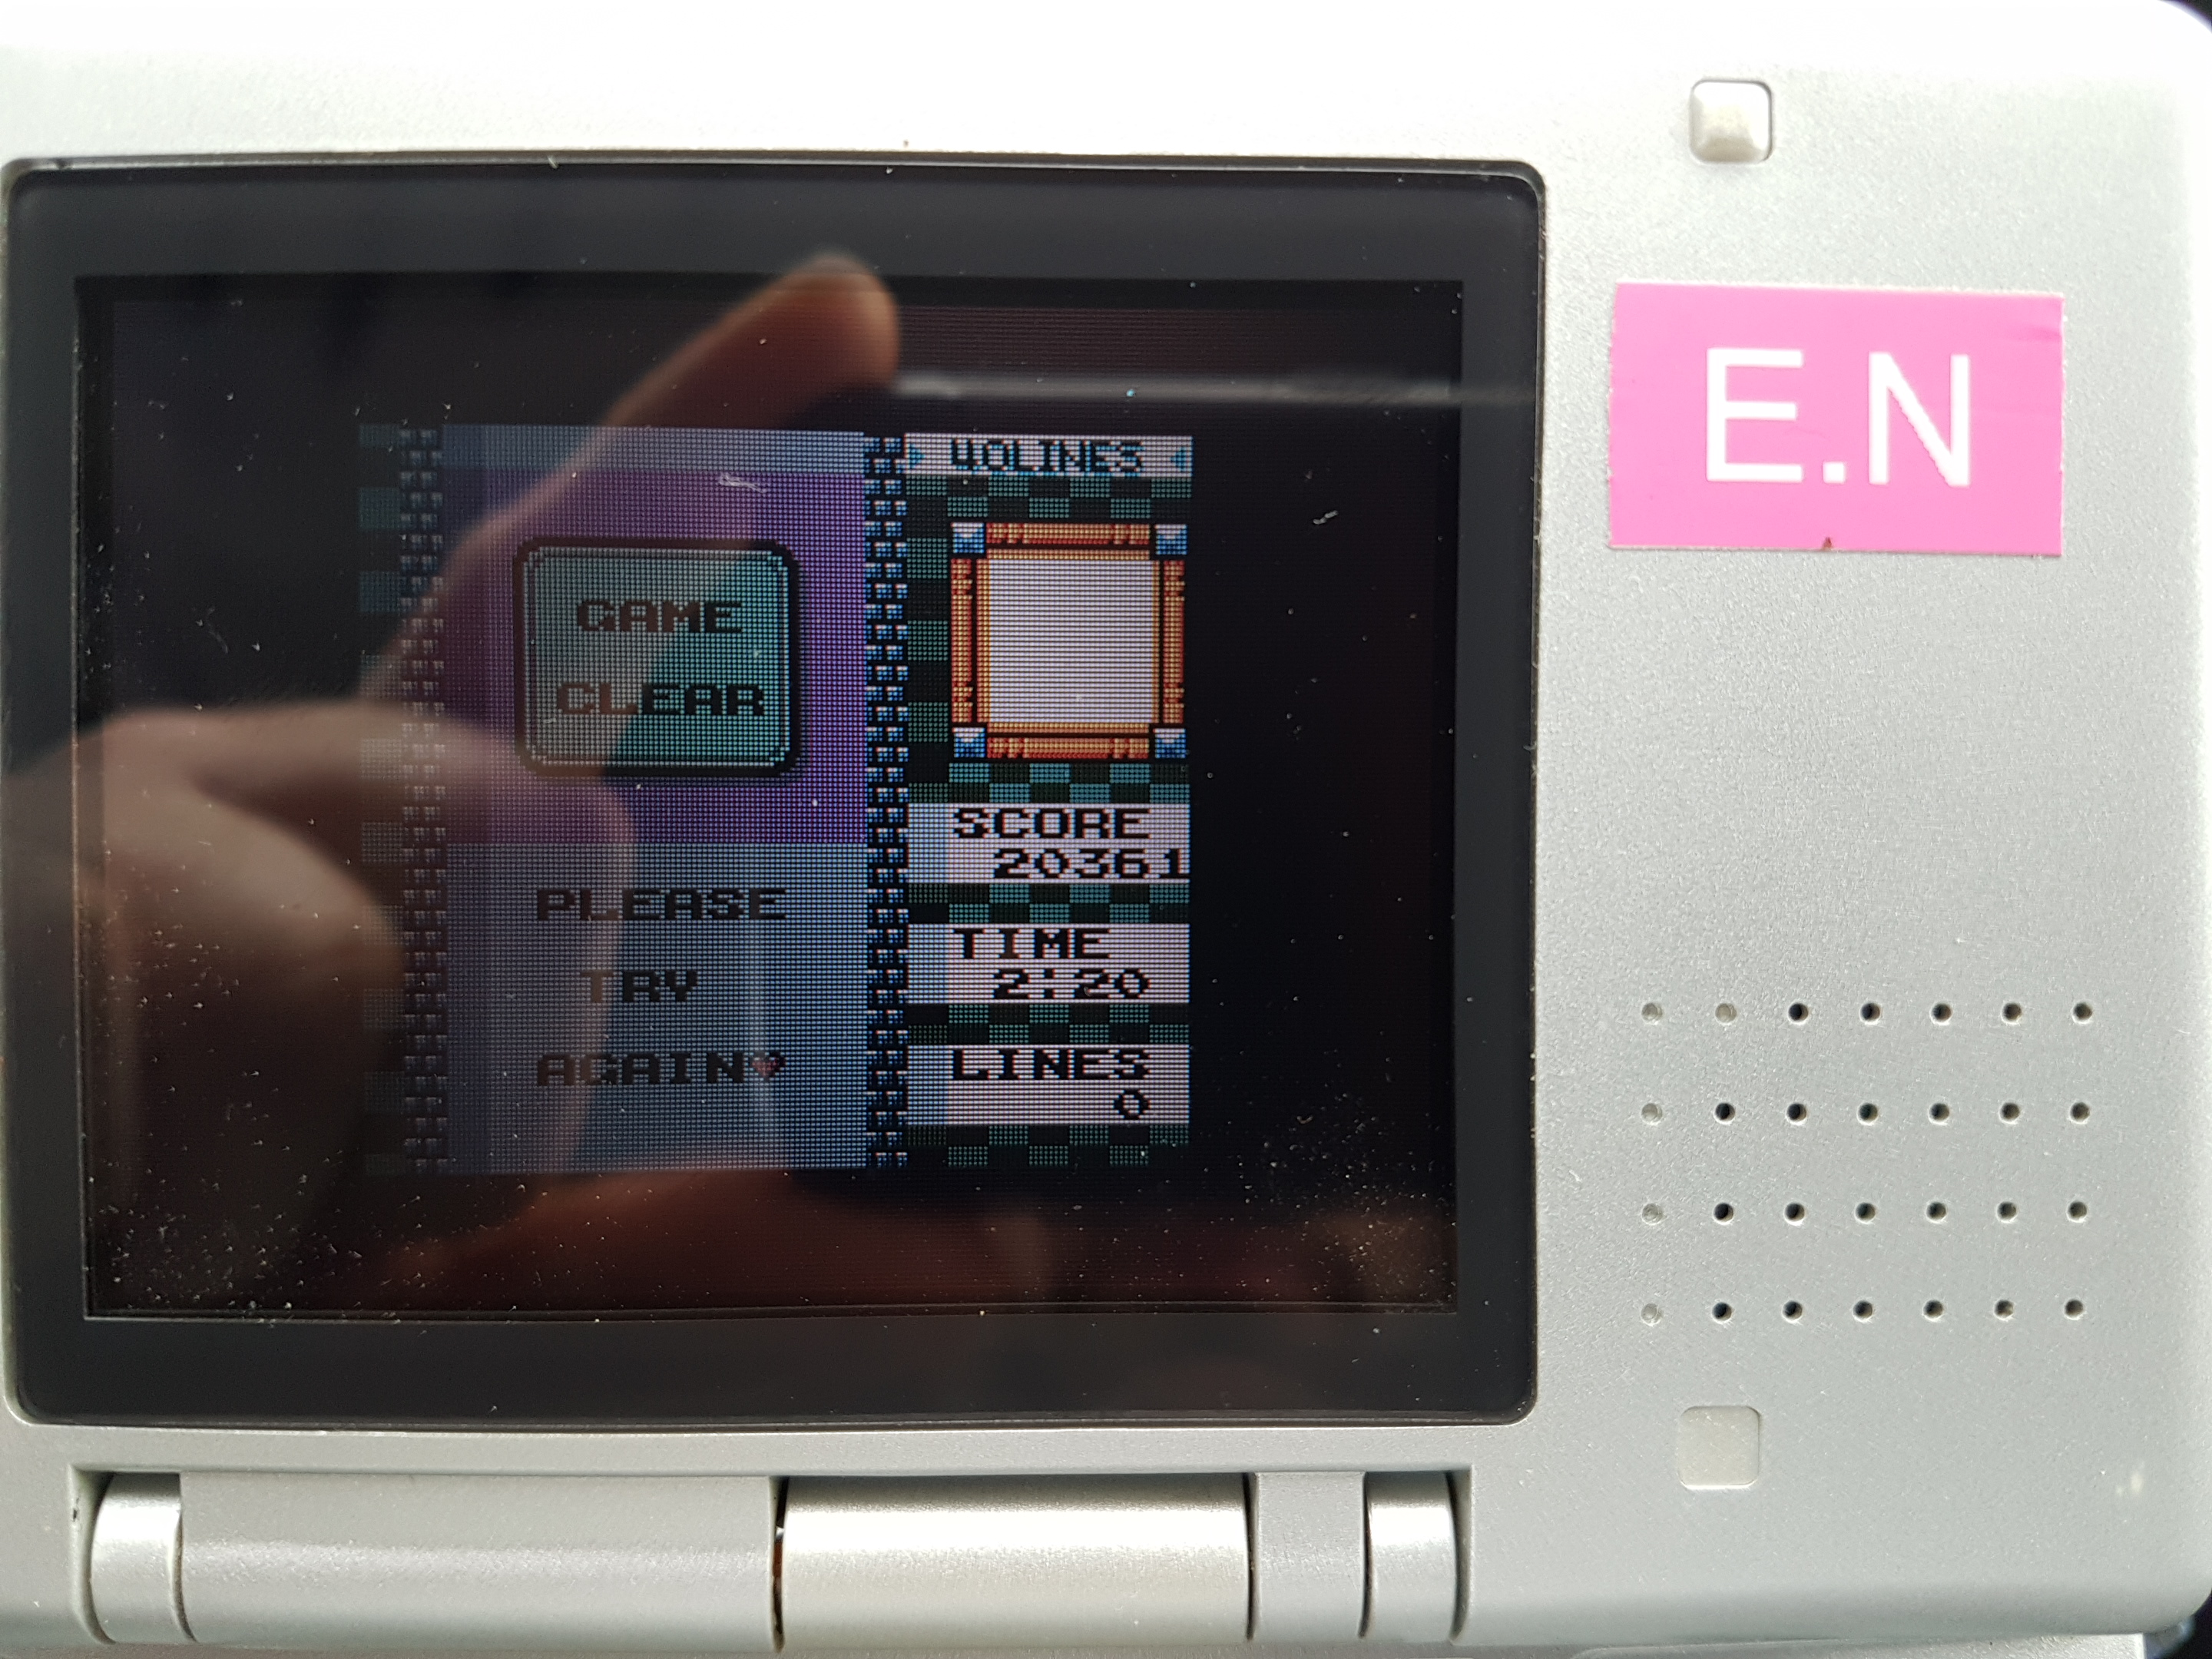 EddieNiceguy: Tetris DX: 40 Lines [Level 5/Height 3] (Game Boy Color Emulated) 0:02:20 points on 2019-01-25 05:38:14